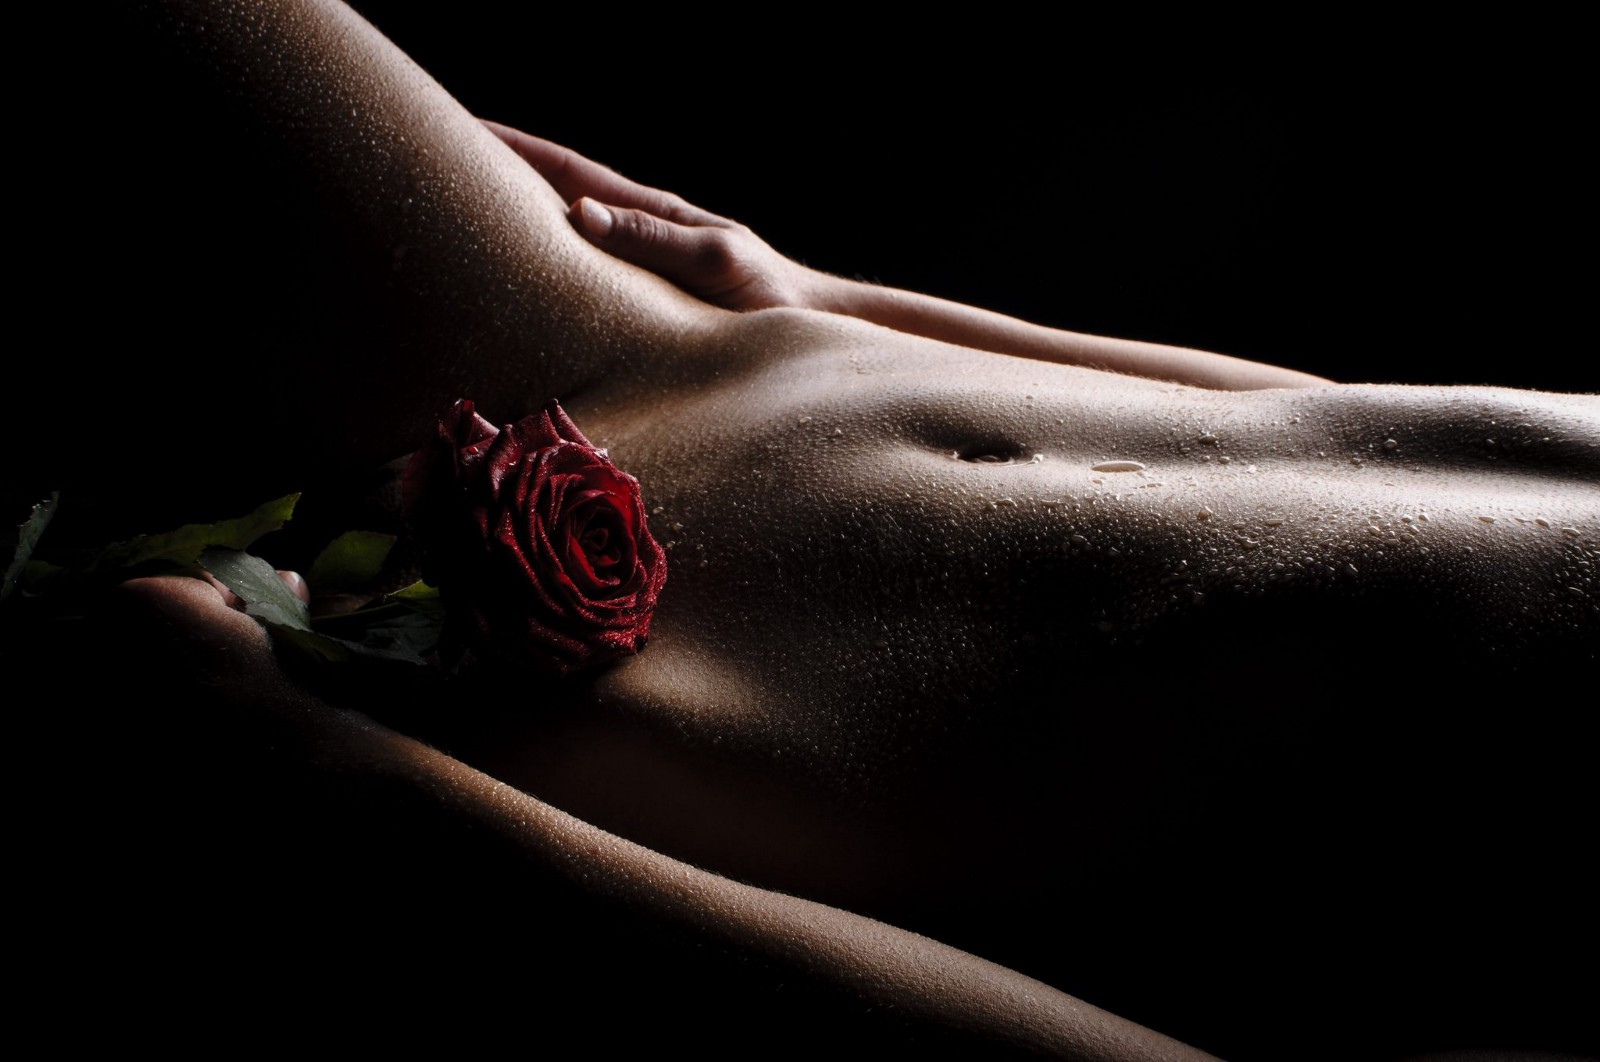 impress your wife or girlfriend with an erotic massage experience in London